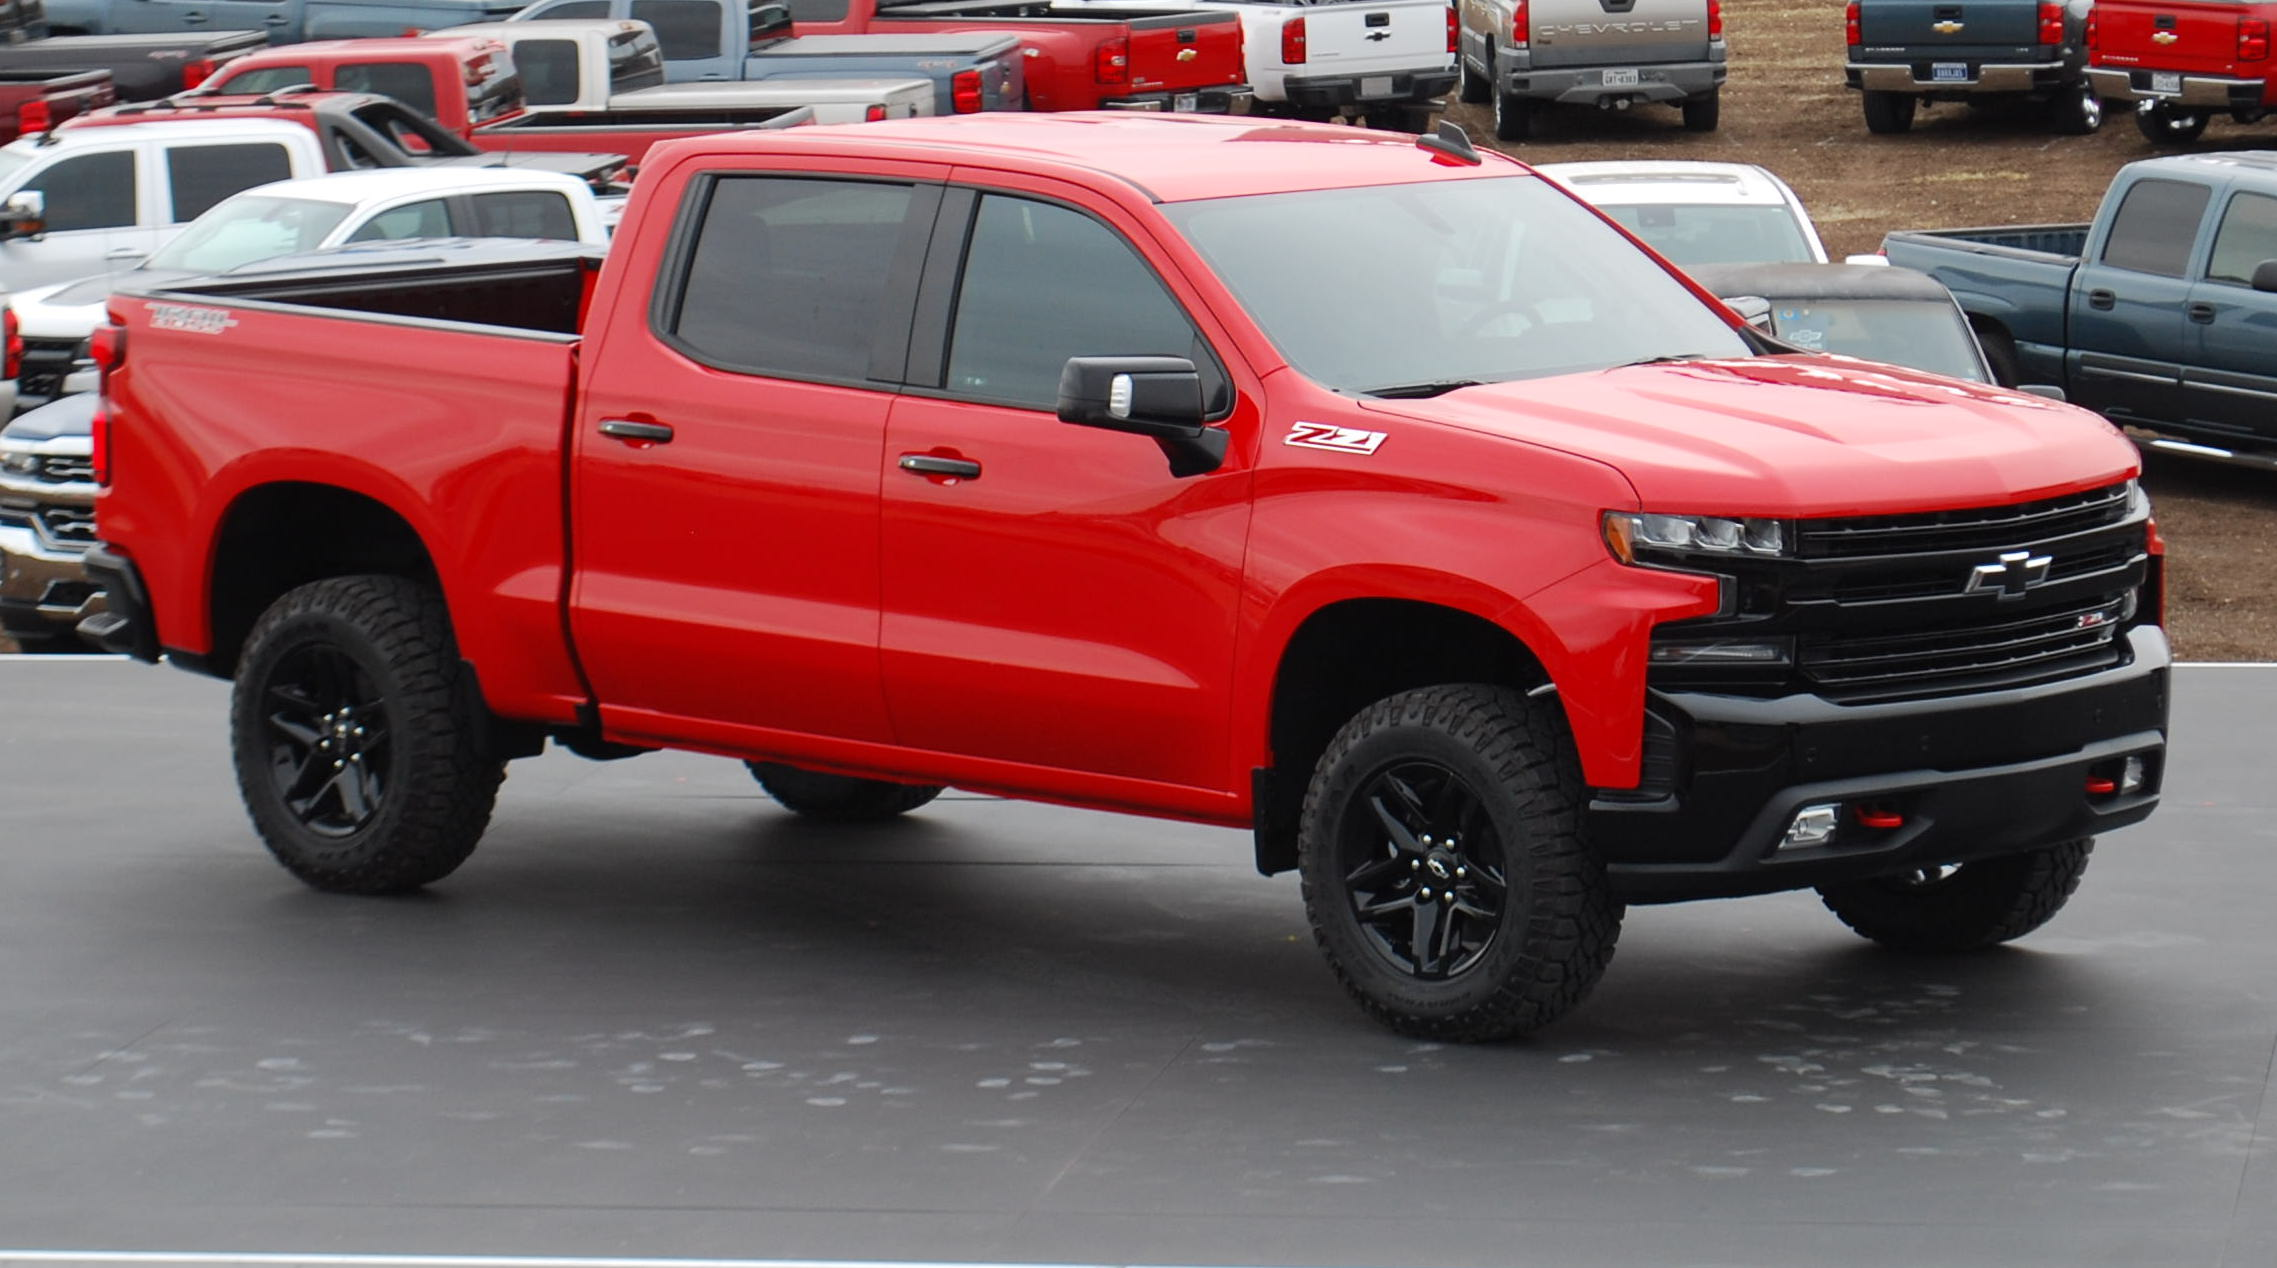 Texas Surprise 2019 Chevrolet Silverado Trail Boss The Truth About Cars